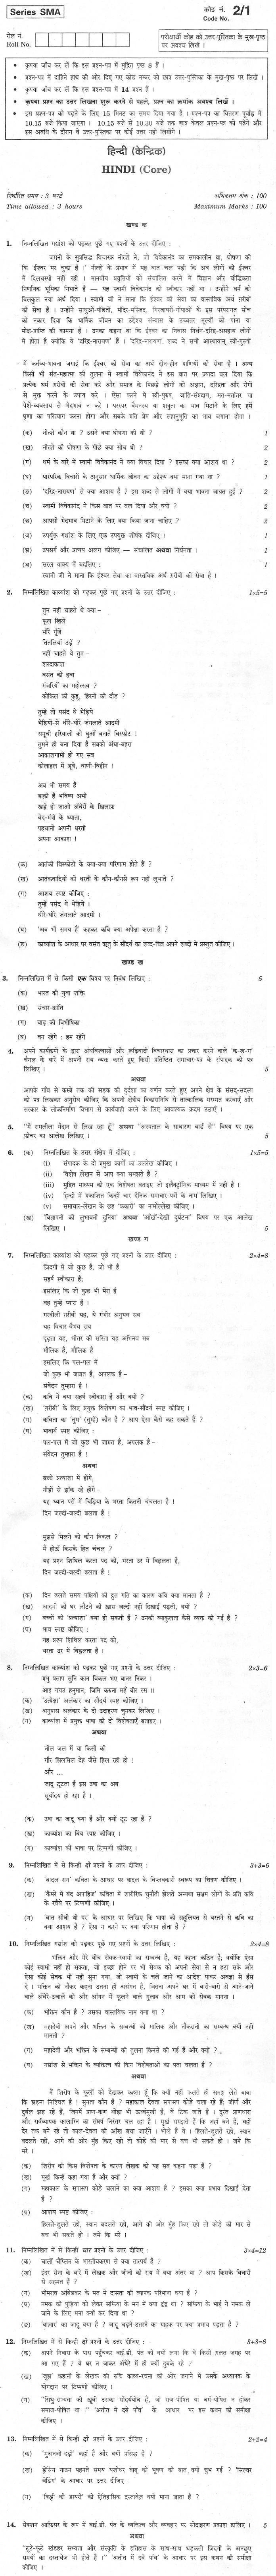 CBSE Class XII Previous Year Question Paper 2012 Hindi (Core)